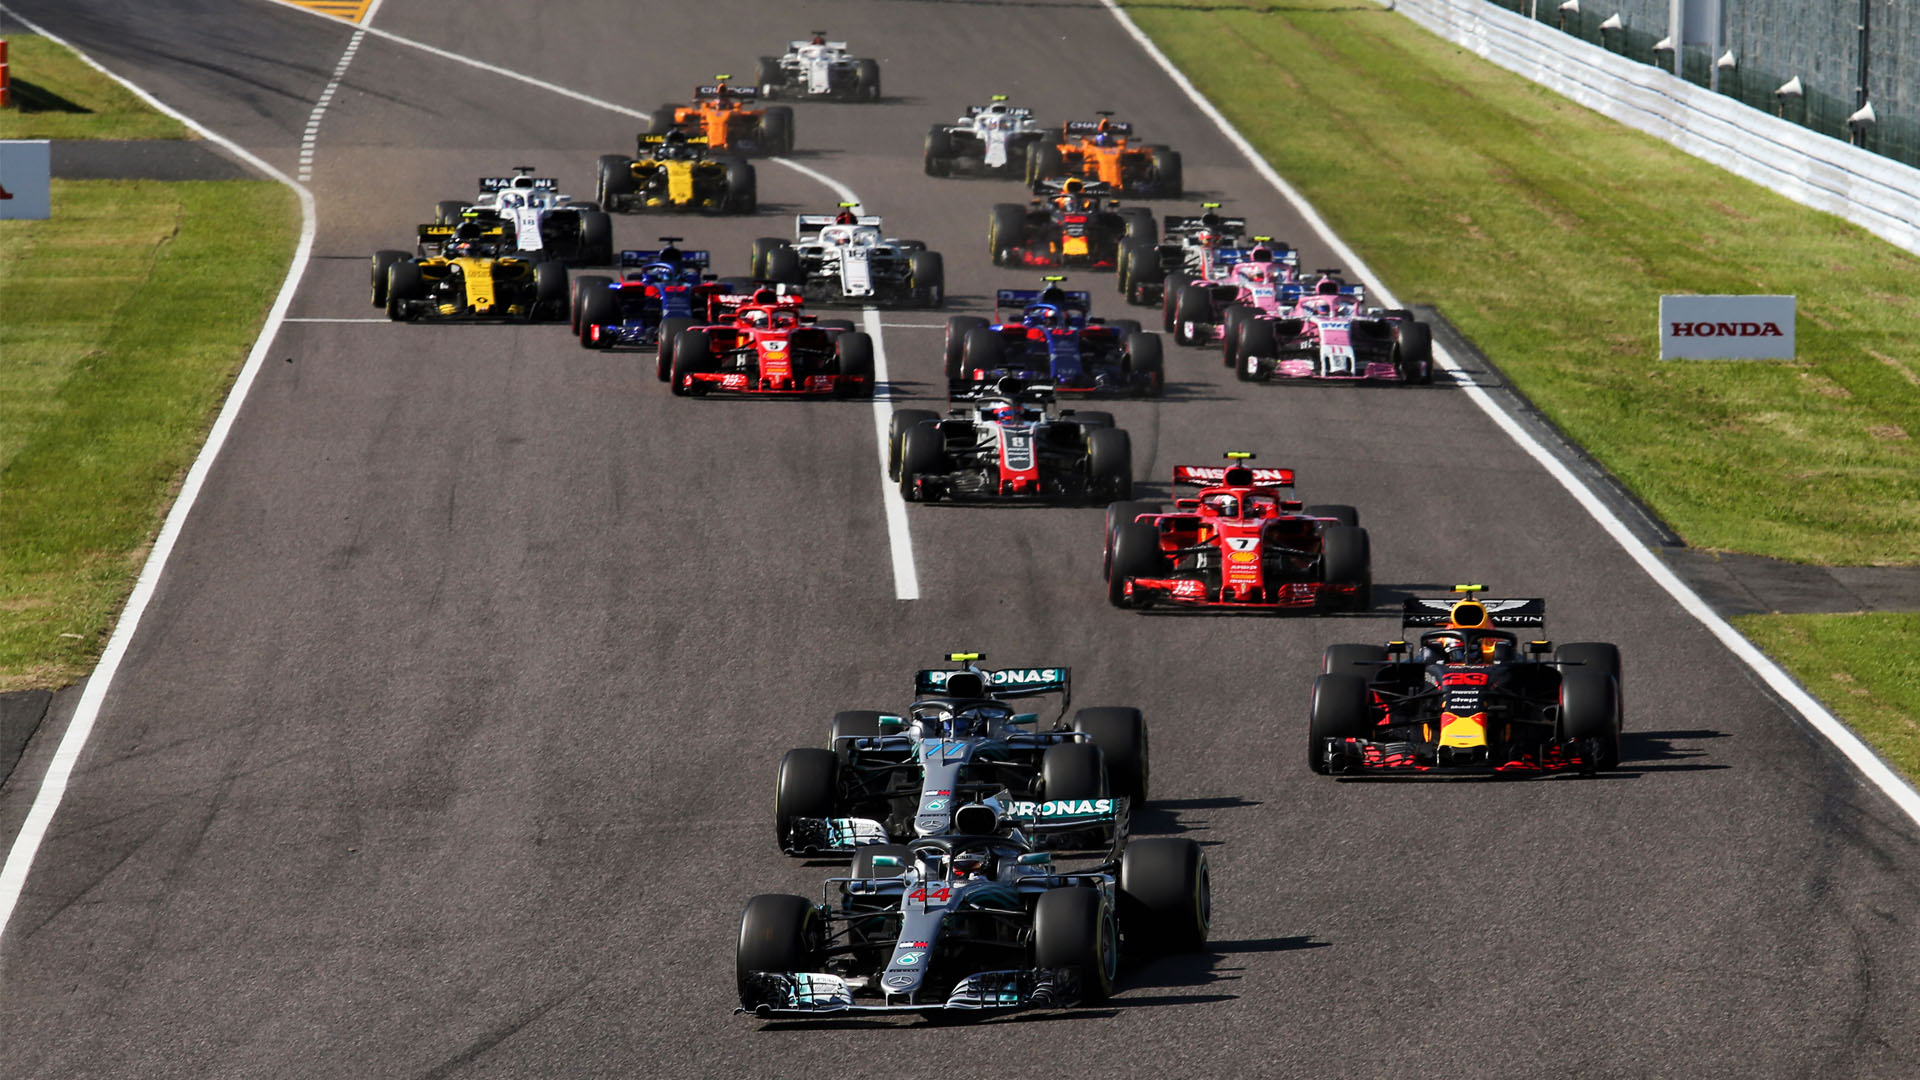 Form Guide Ahead Of The 2019 Japanese Grand Prix The Favourites For Pole Points And Victory In Japan Formula 1